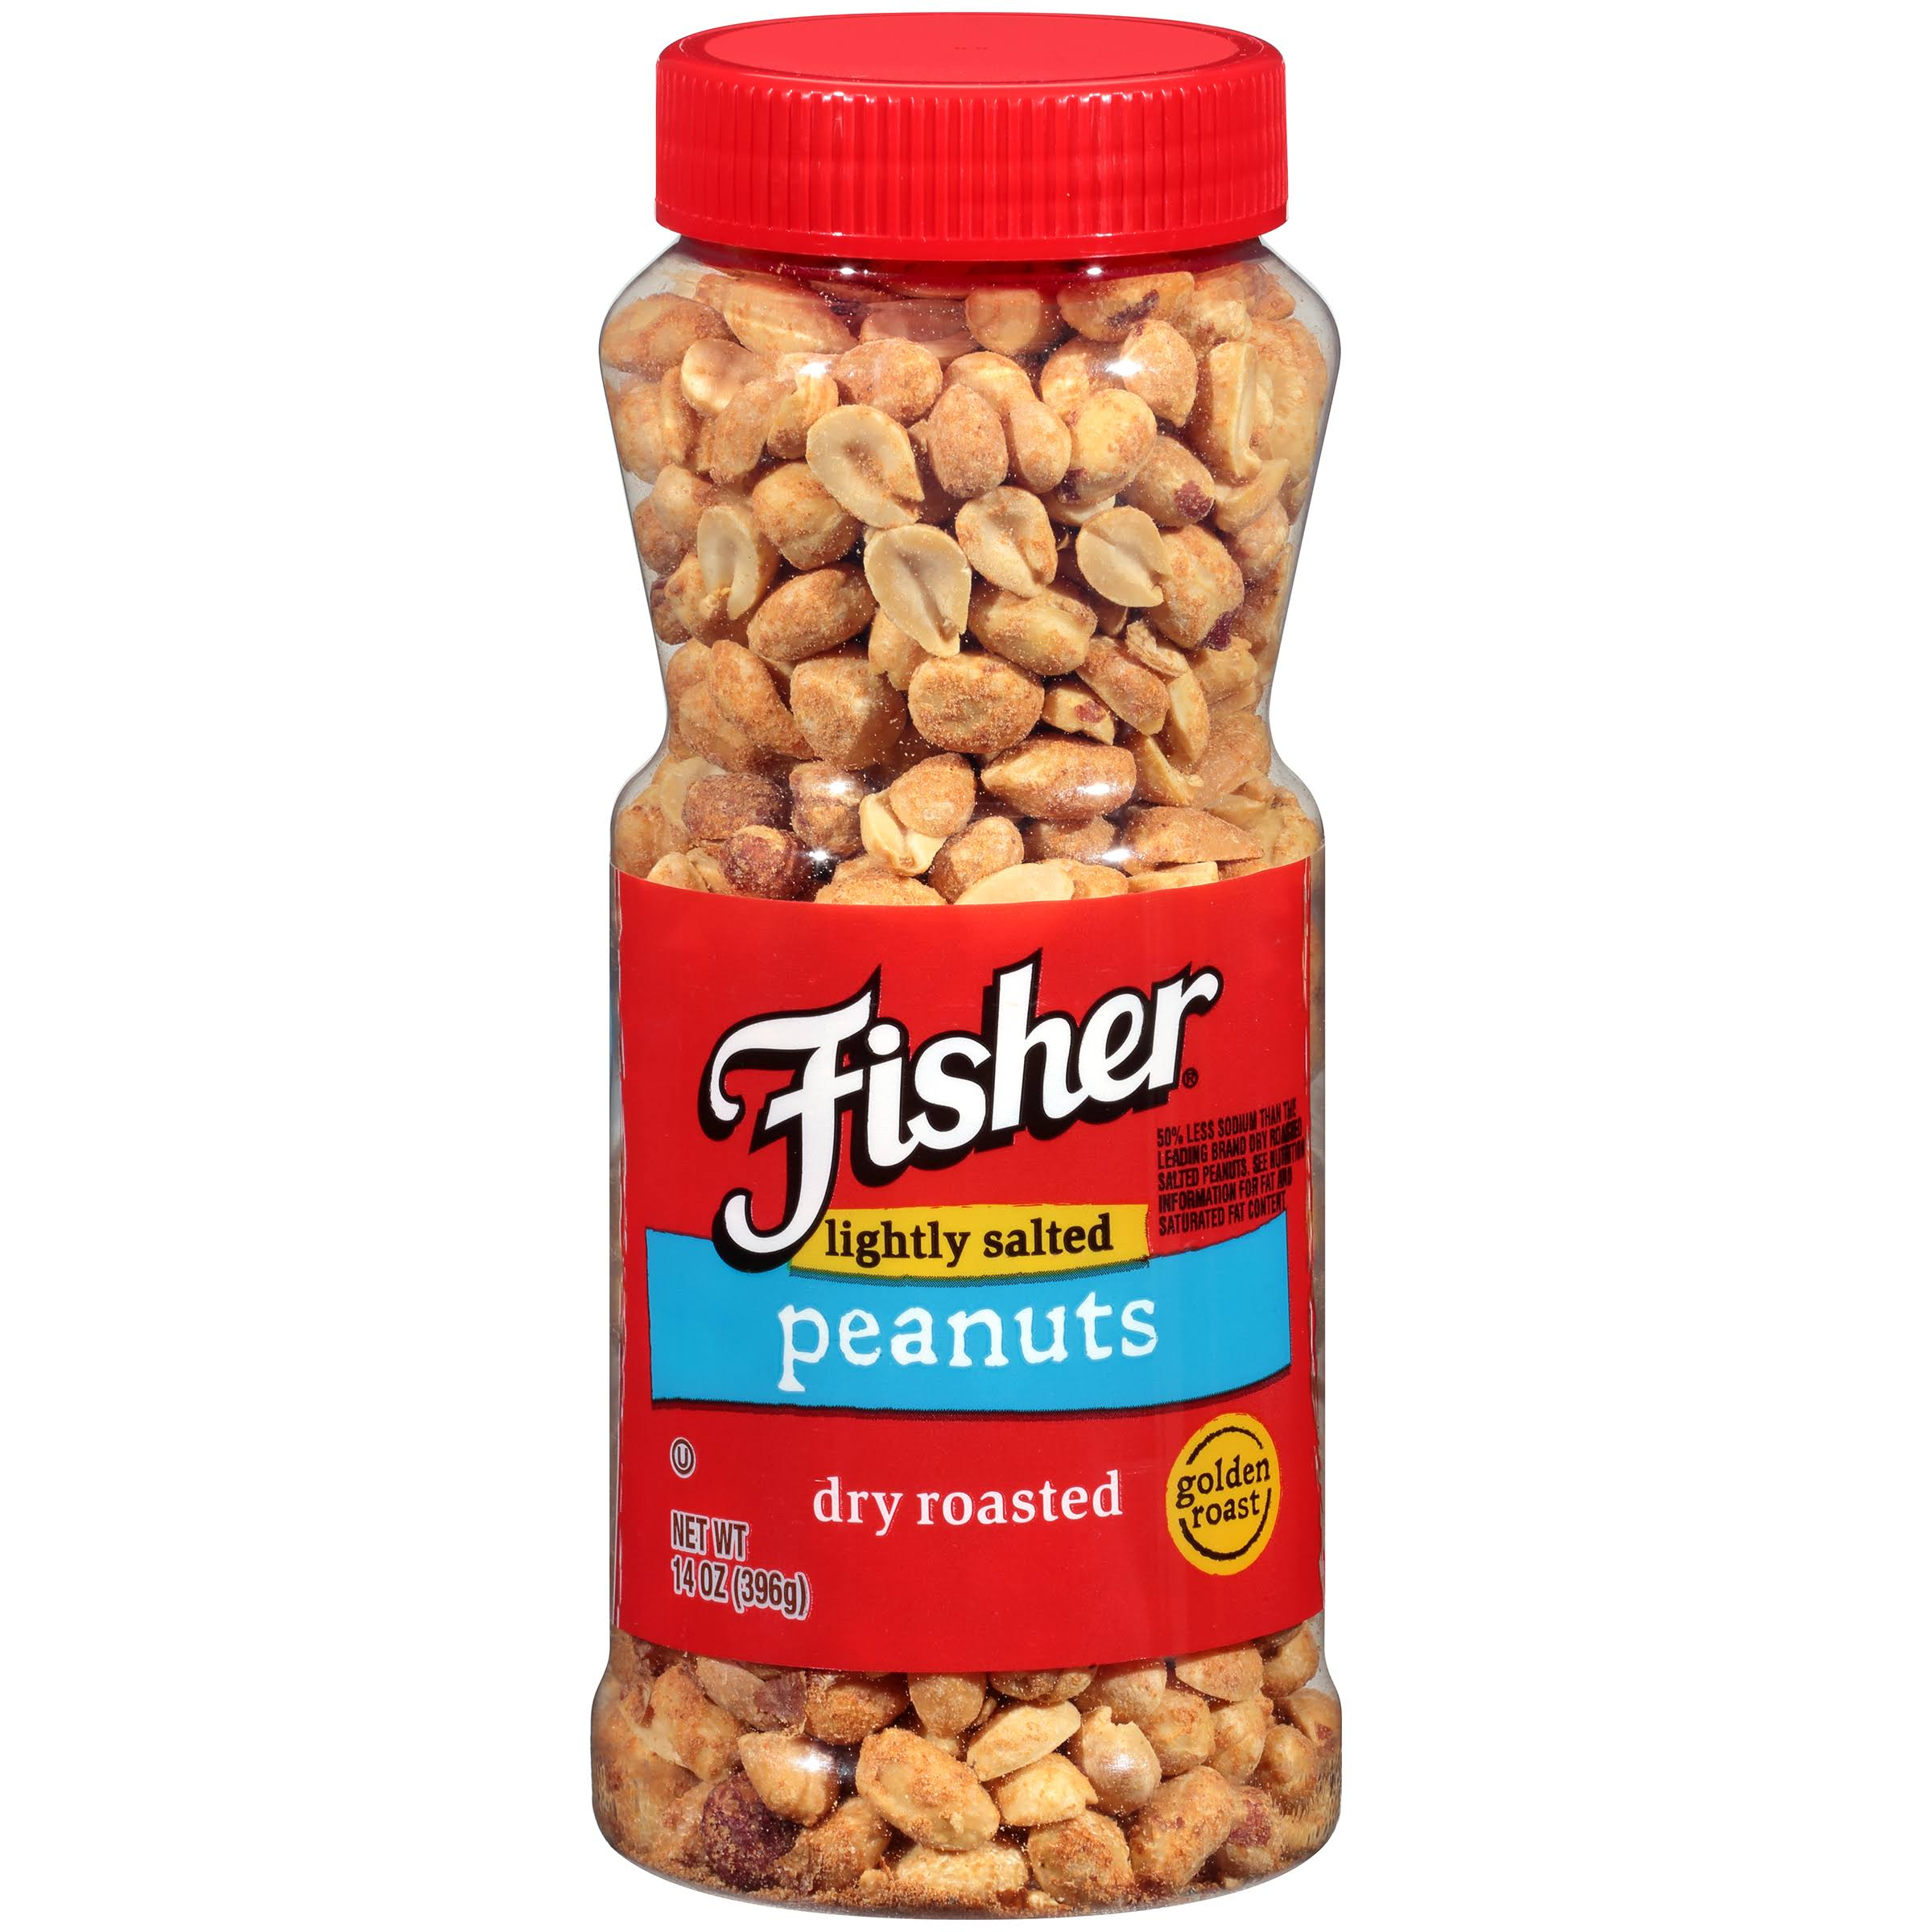 Fisher Dry Roasted Lightly Salted Peanuts - 14oz